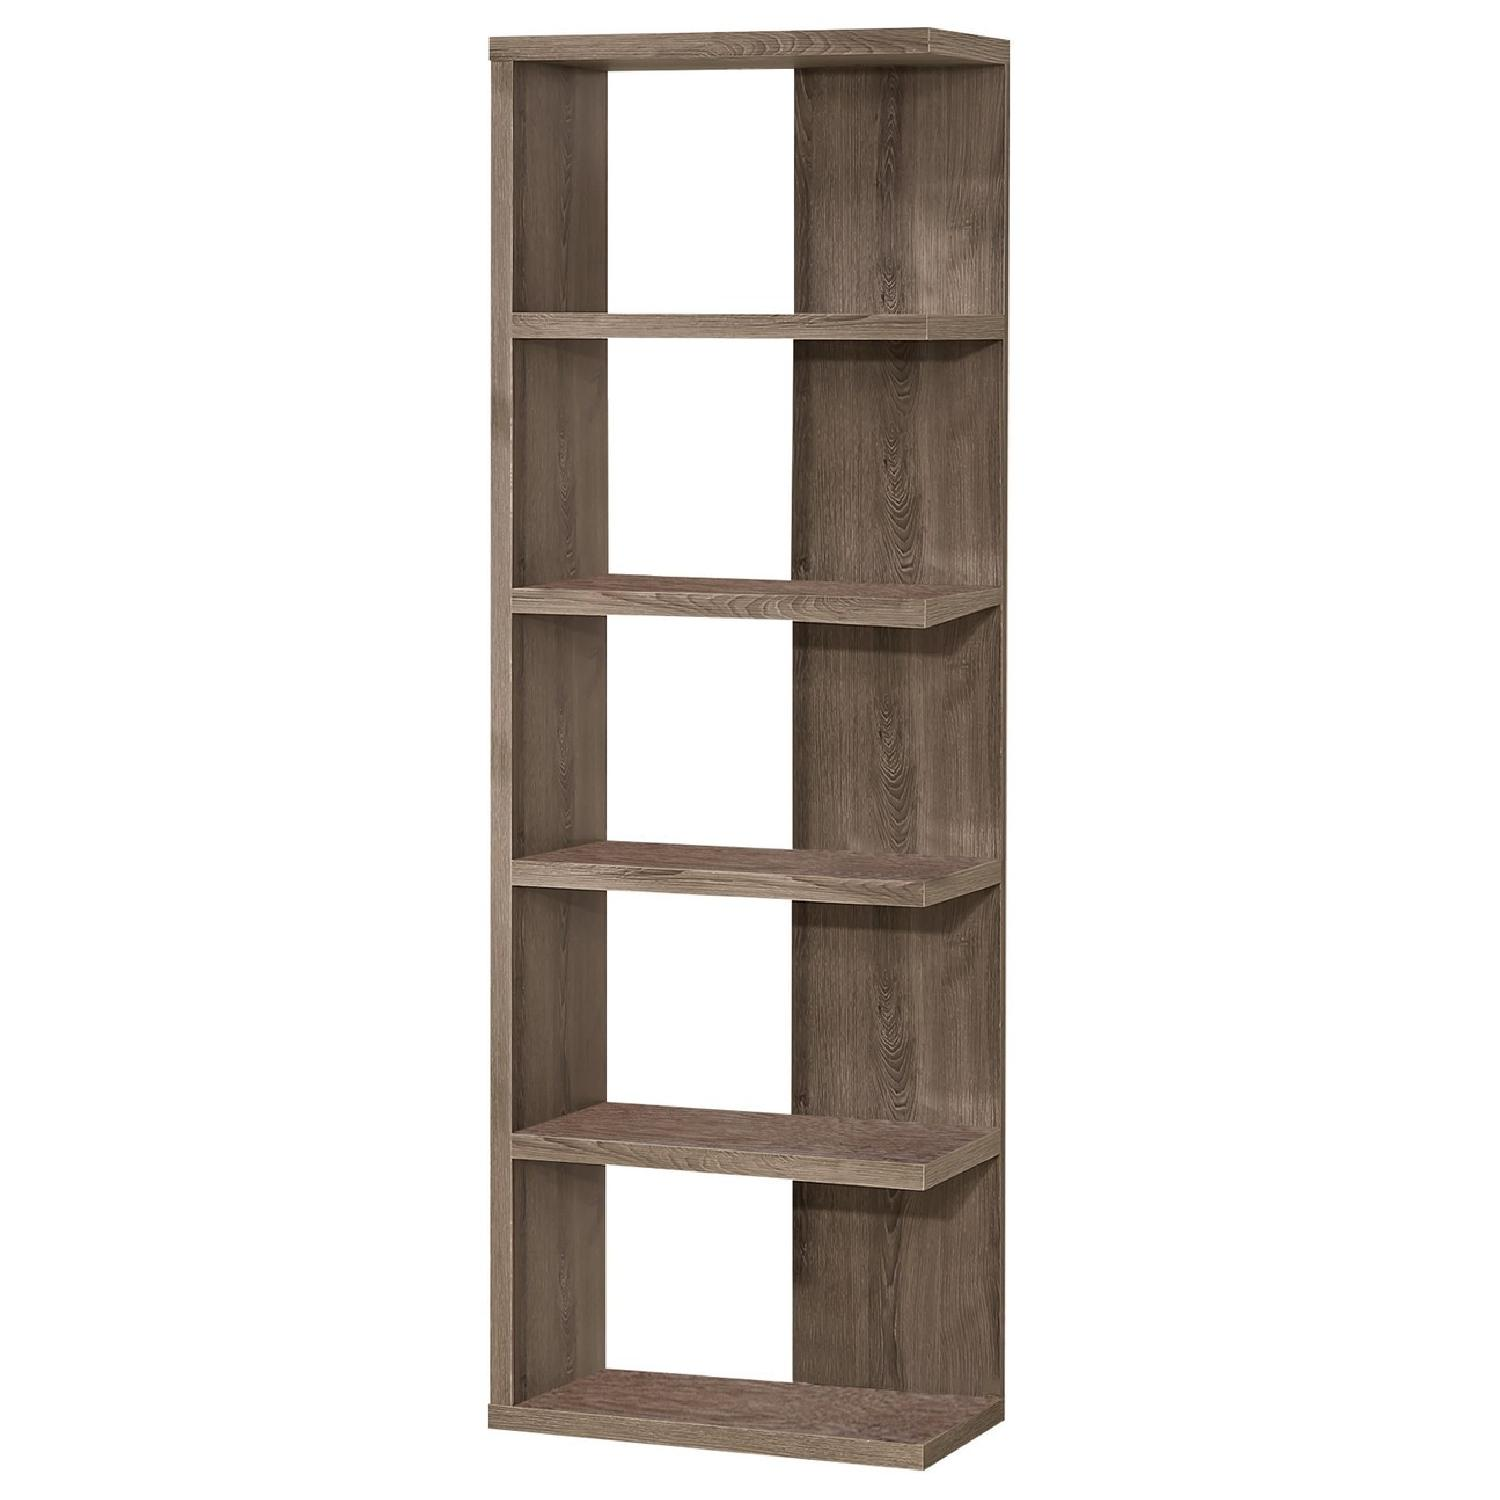 Contemporary Style Weathered Grey Semi-Backless Bookcase - image-0